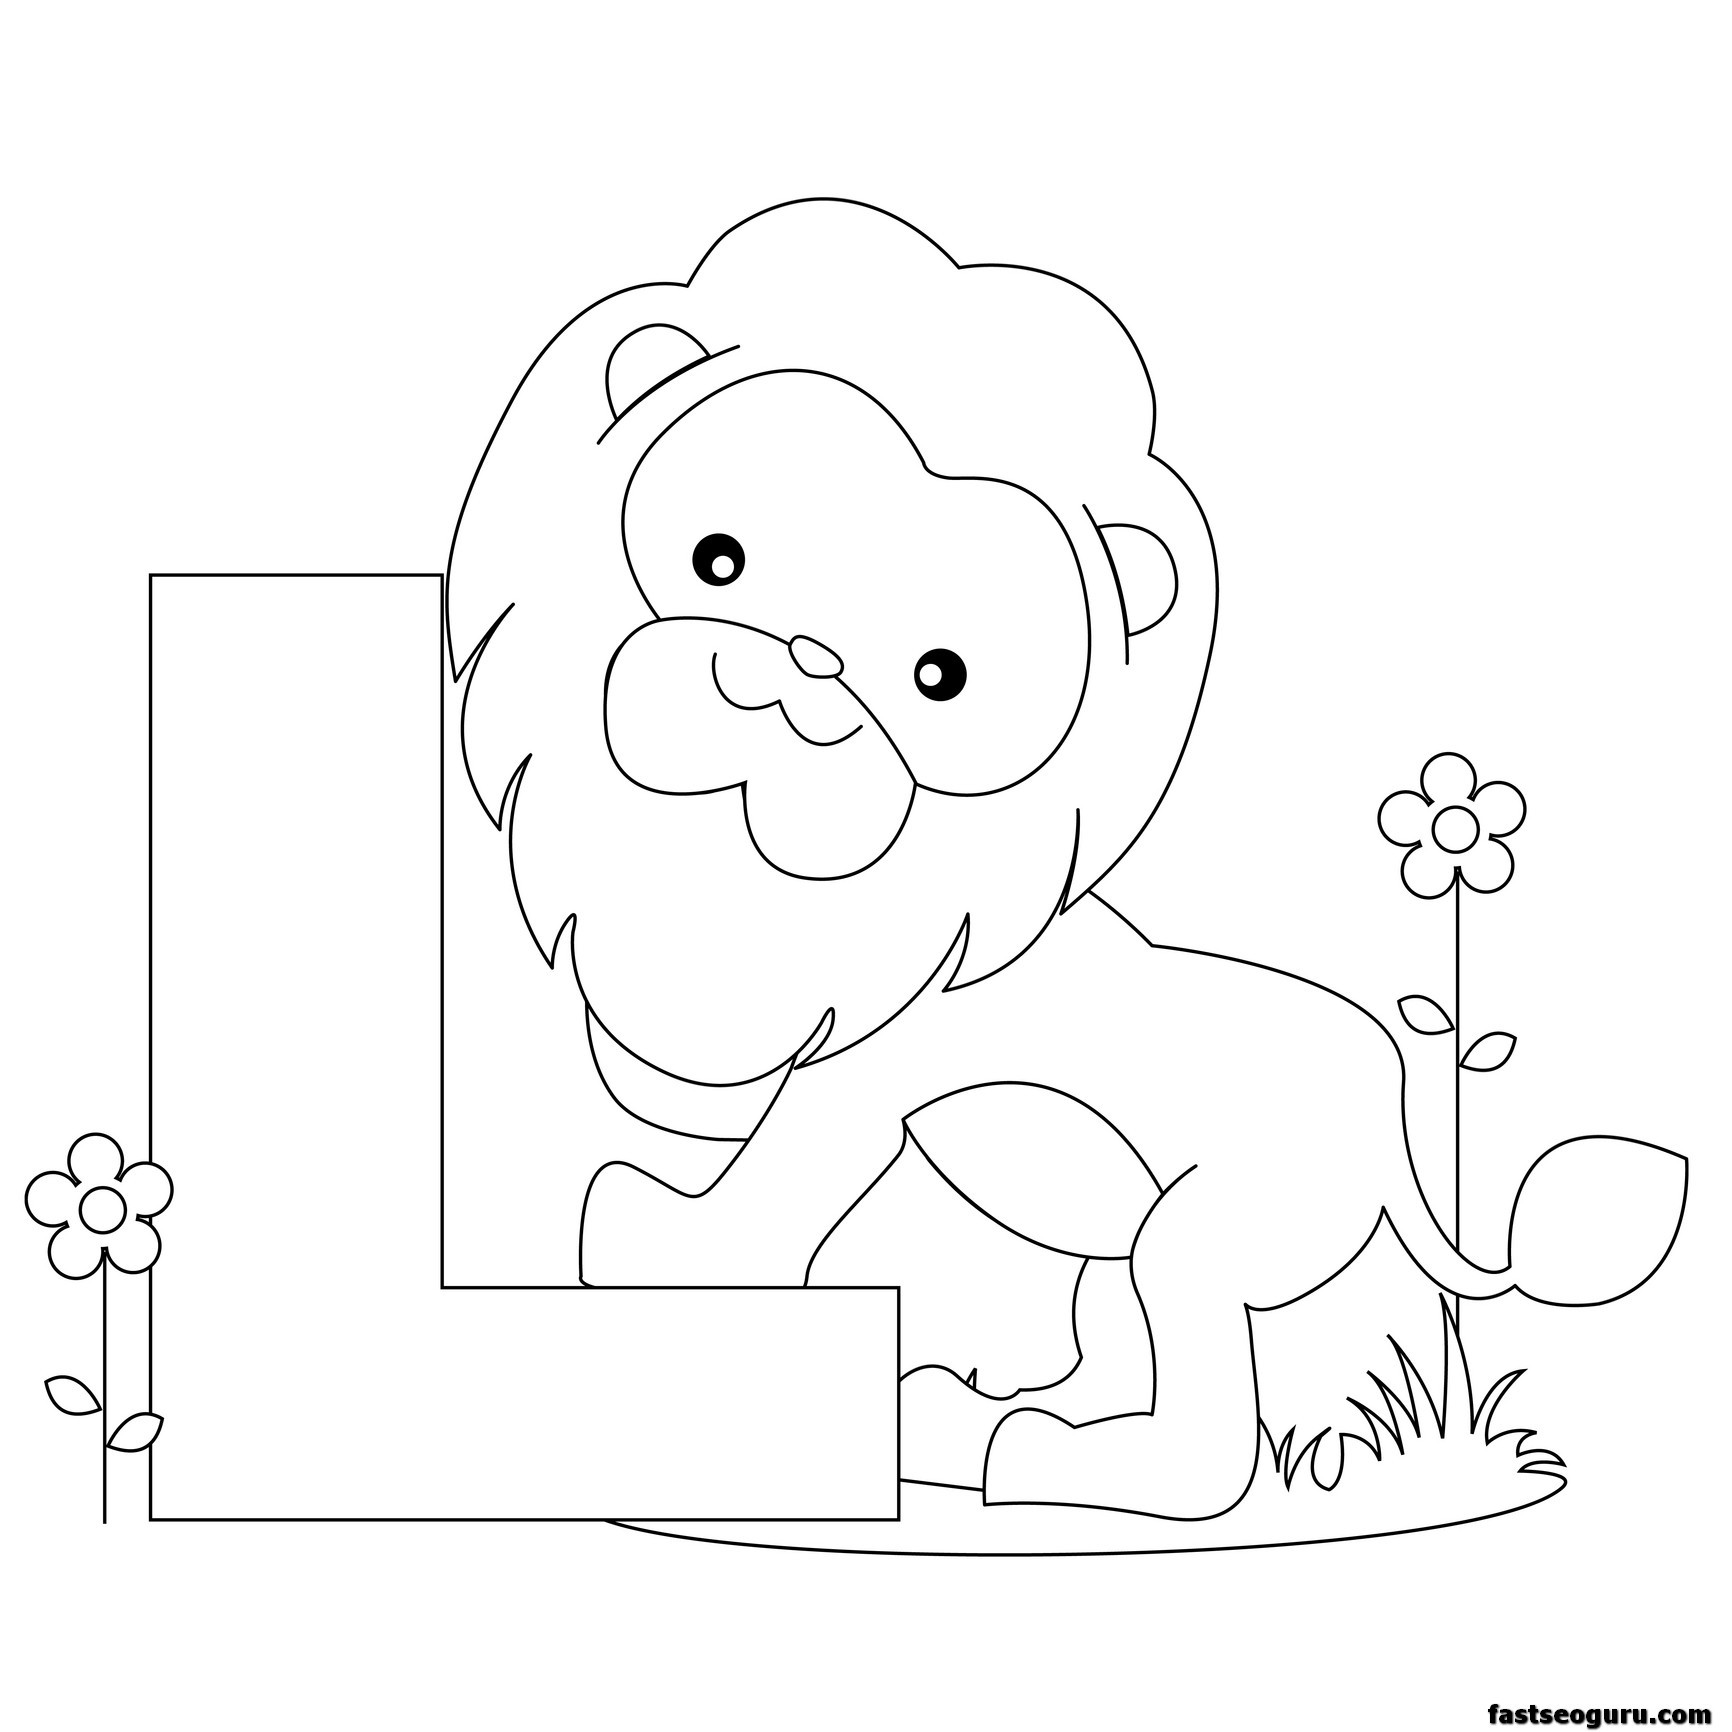 printable alphabet coloring pages animals | Printable Animal Alphabet worksheets Letter L is for Lion ...